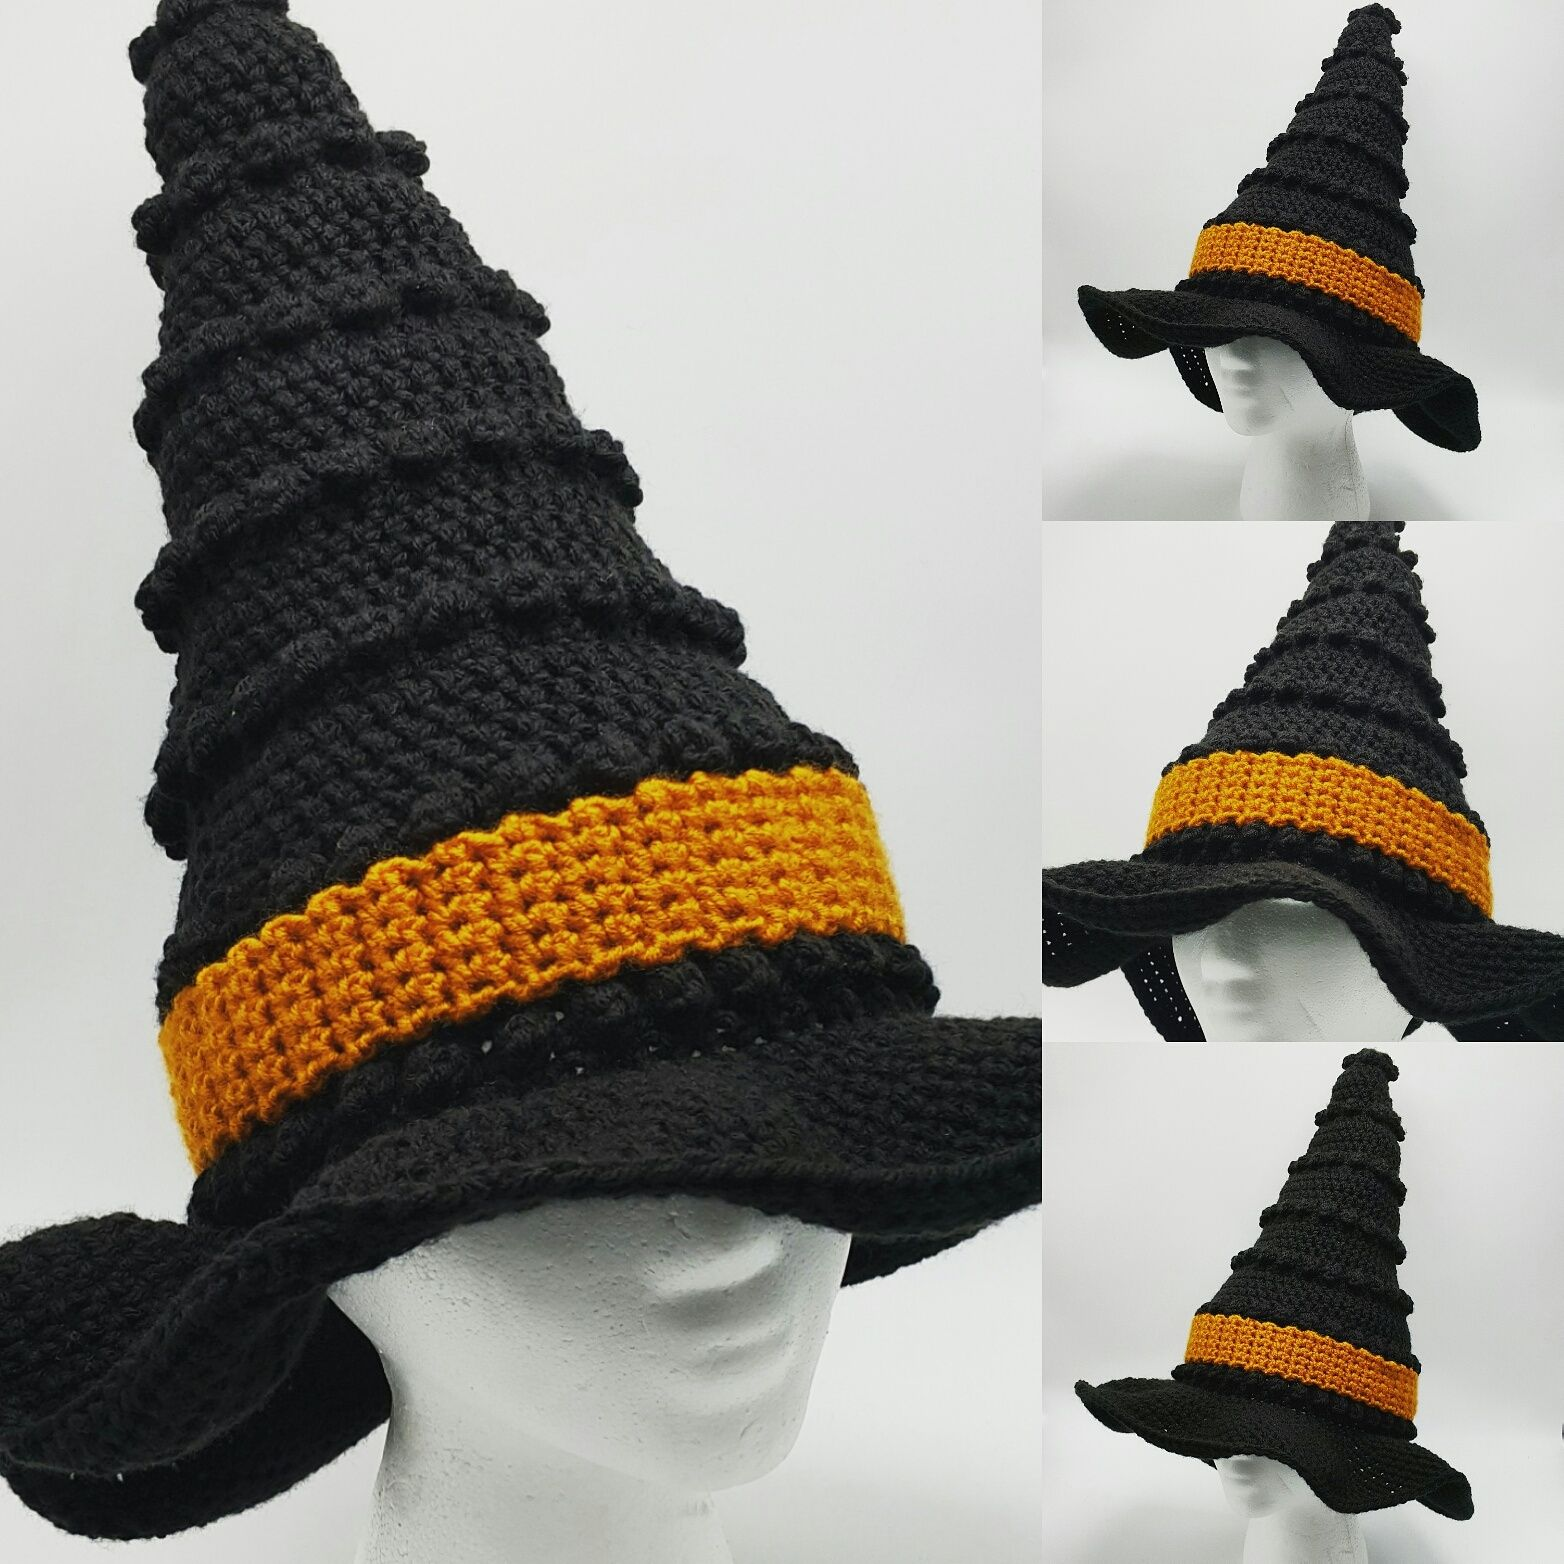 Crochet pattern witch hat crochet pattern crochet pattern crochet pattern witch hat crochet pattern crochet pattern witches hat halloween crochet pattern kids and adults witch hat pattern bankloansurffo Image collections